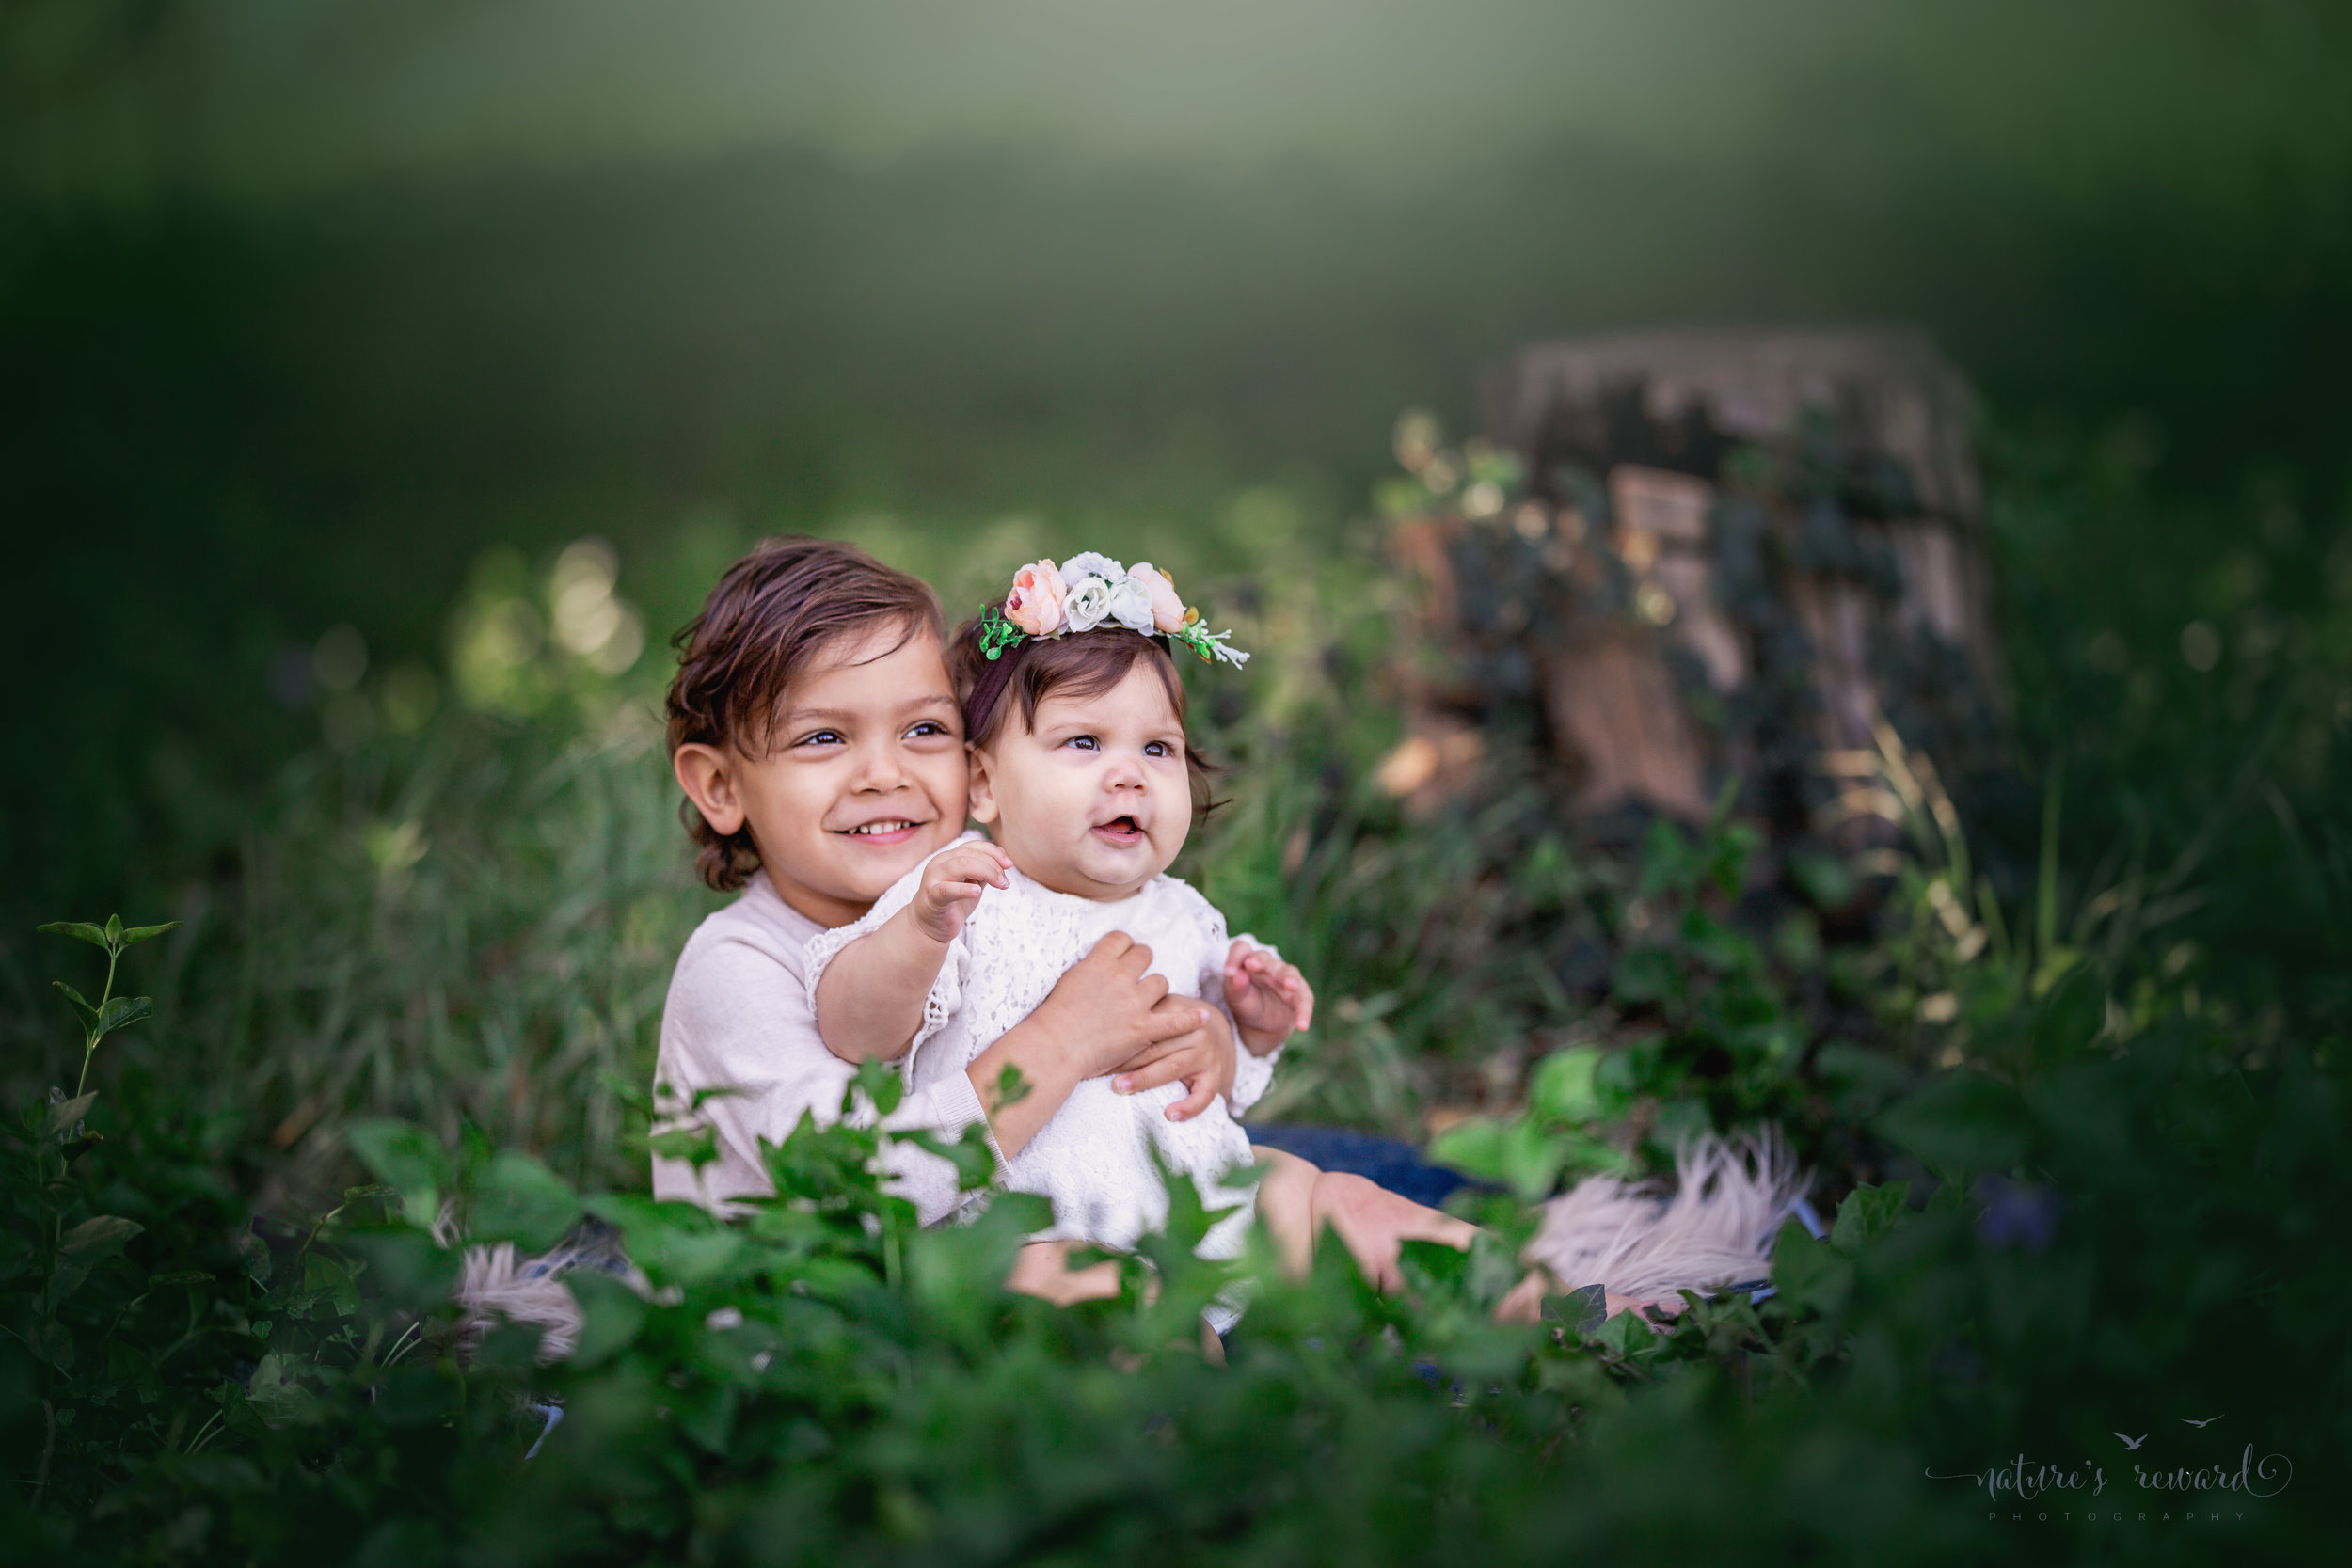 Big Brother holds his little sister in this sibling portrait by Nature's Reward Photography